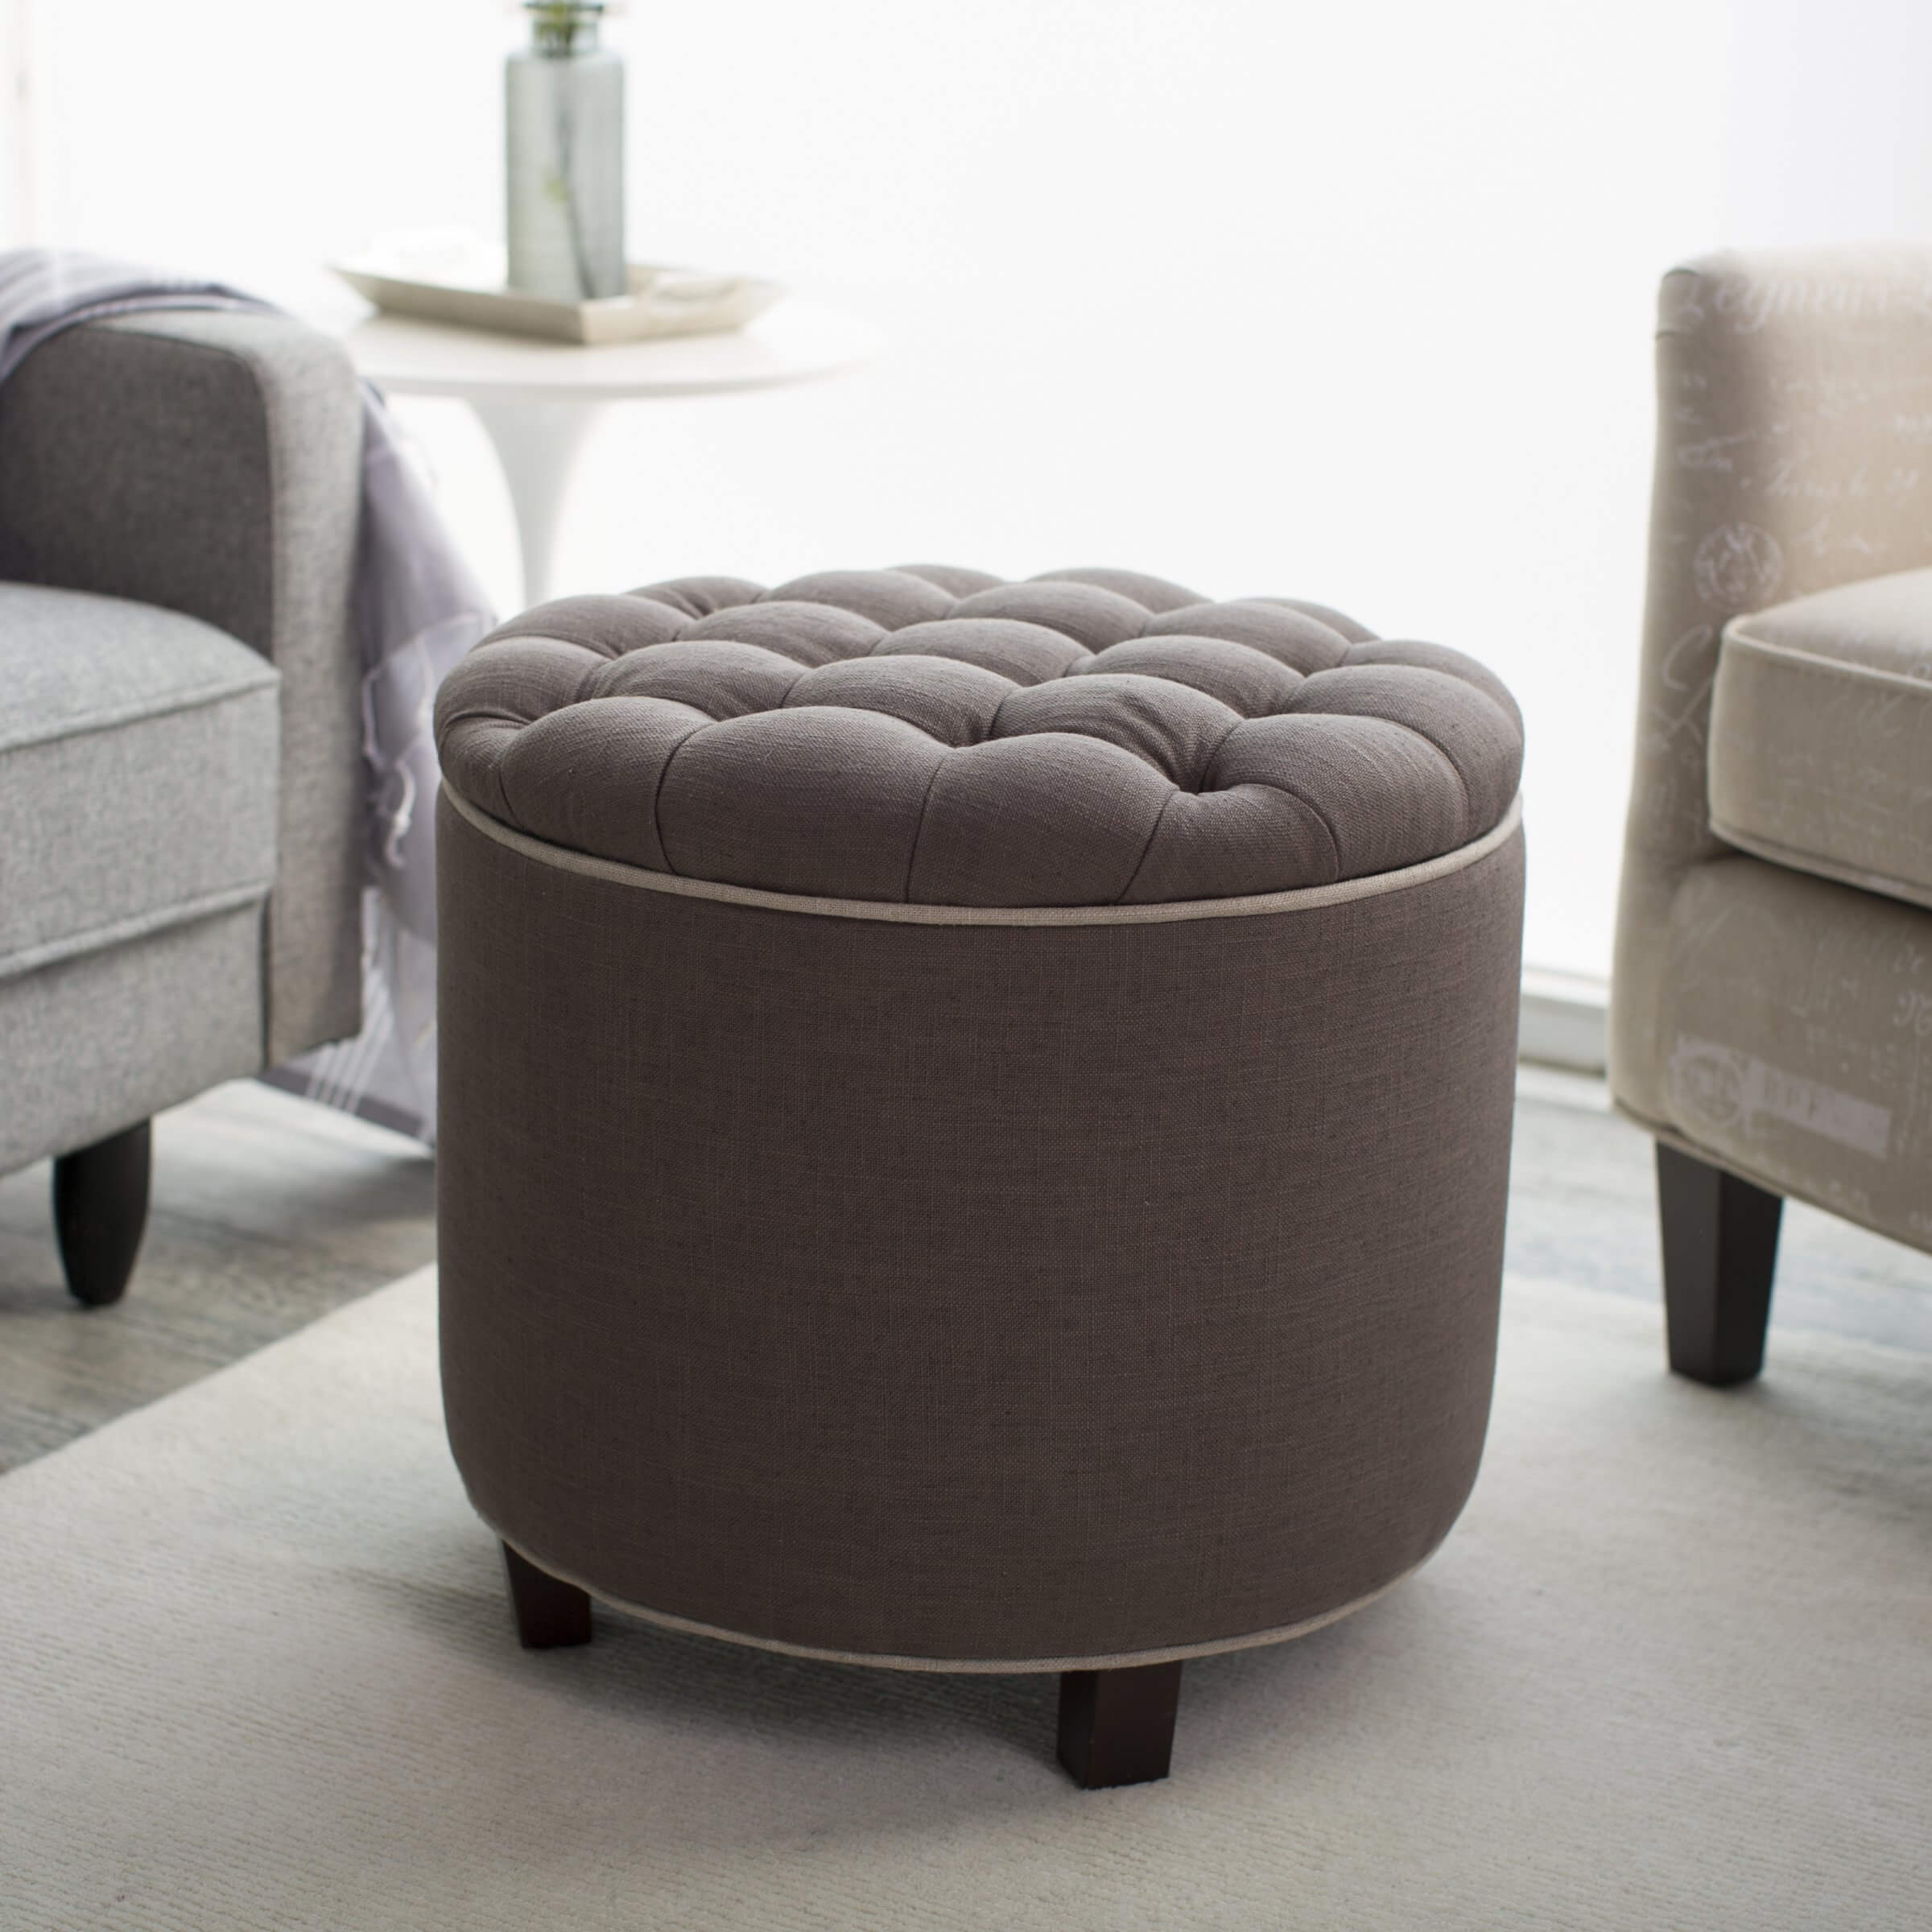 Here's a taller, round ottoman with light chocolate tufted upholstery, standing mildly apart from the light hues of the surrounding room.